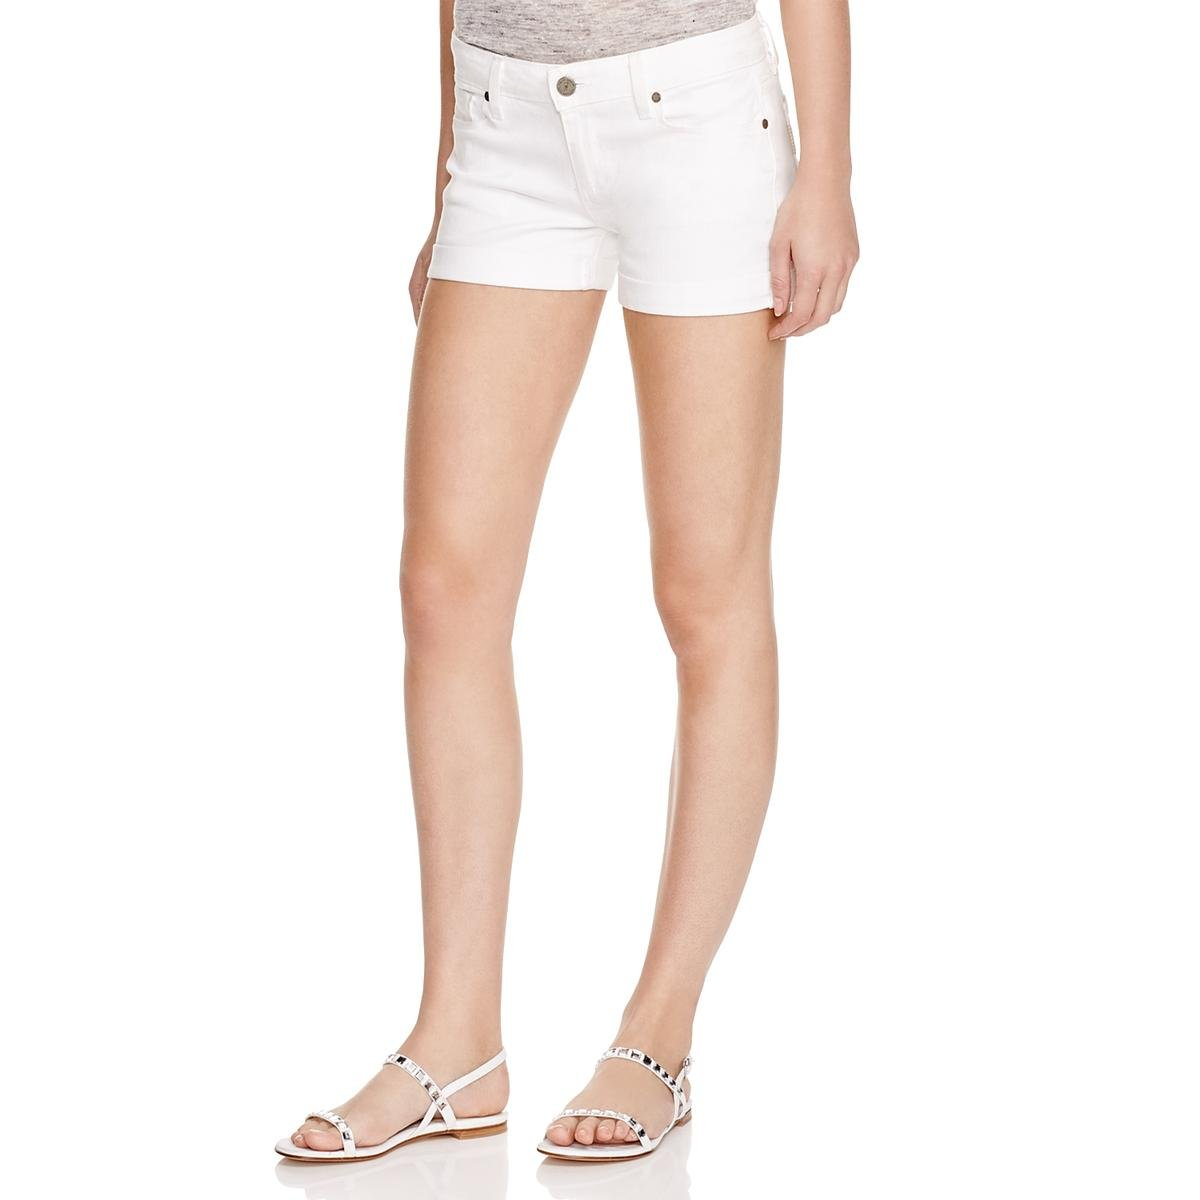 Paige Women's Jimmy Jimmy Short In Optic White, Optic White, 29